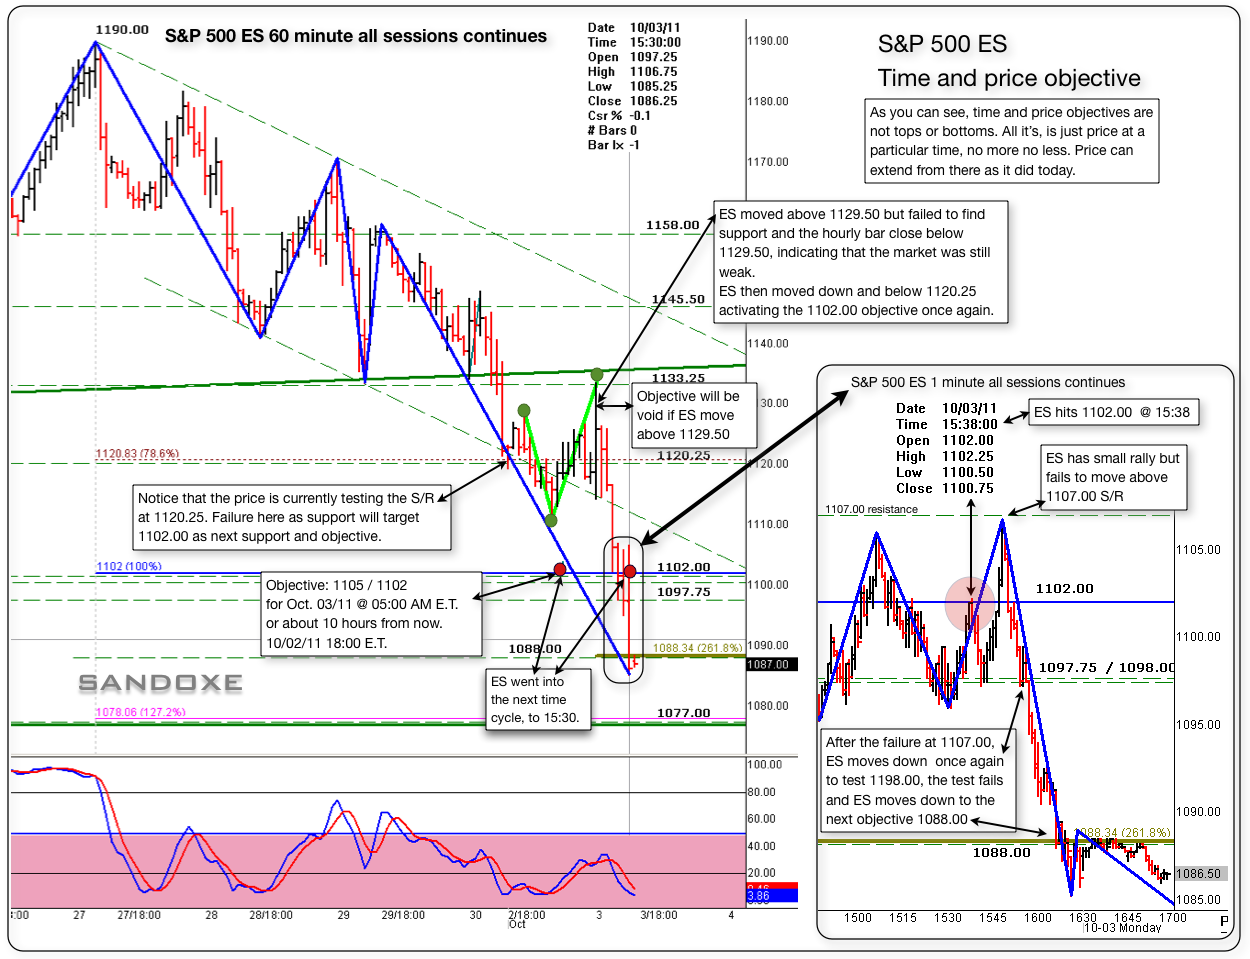 sp 500 es time price objectives 60 minute 10032011